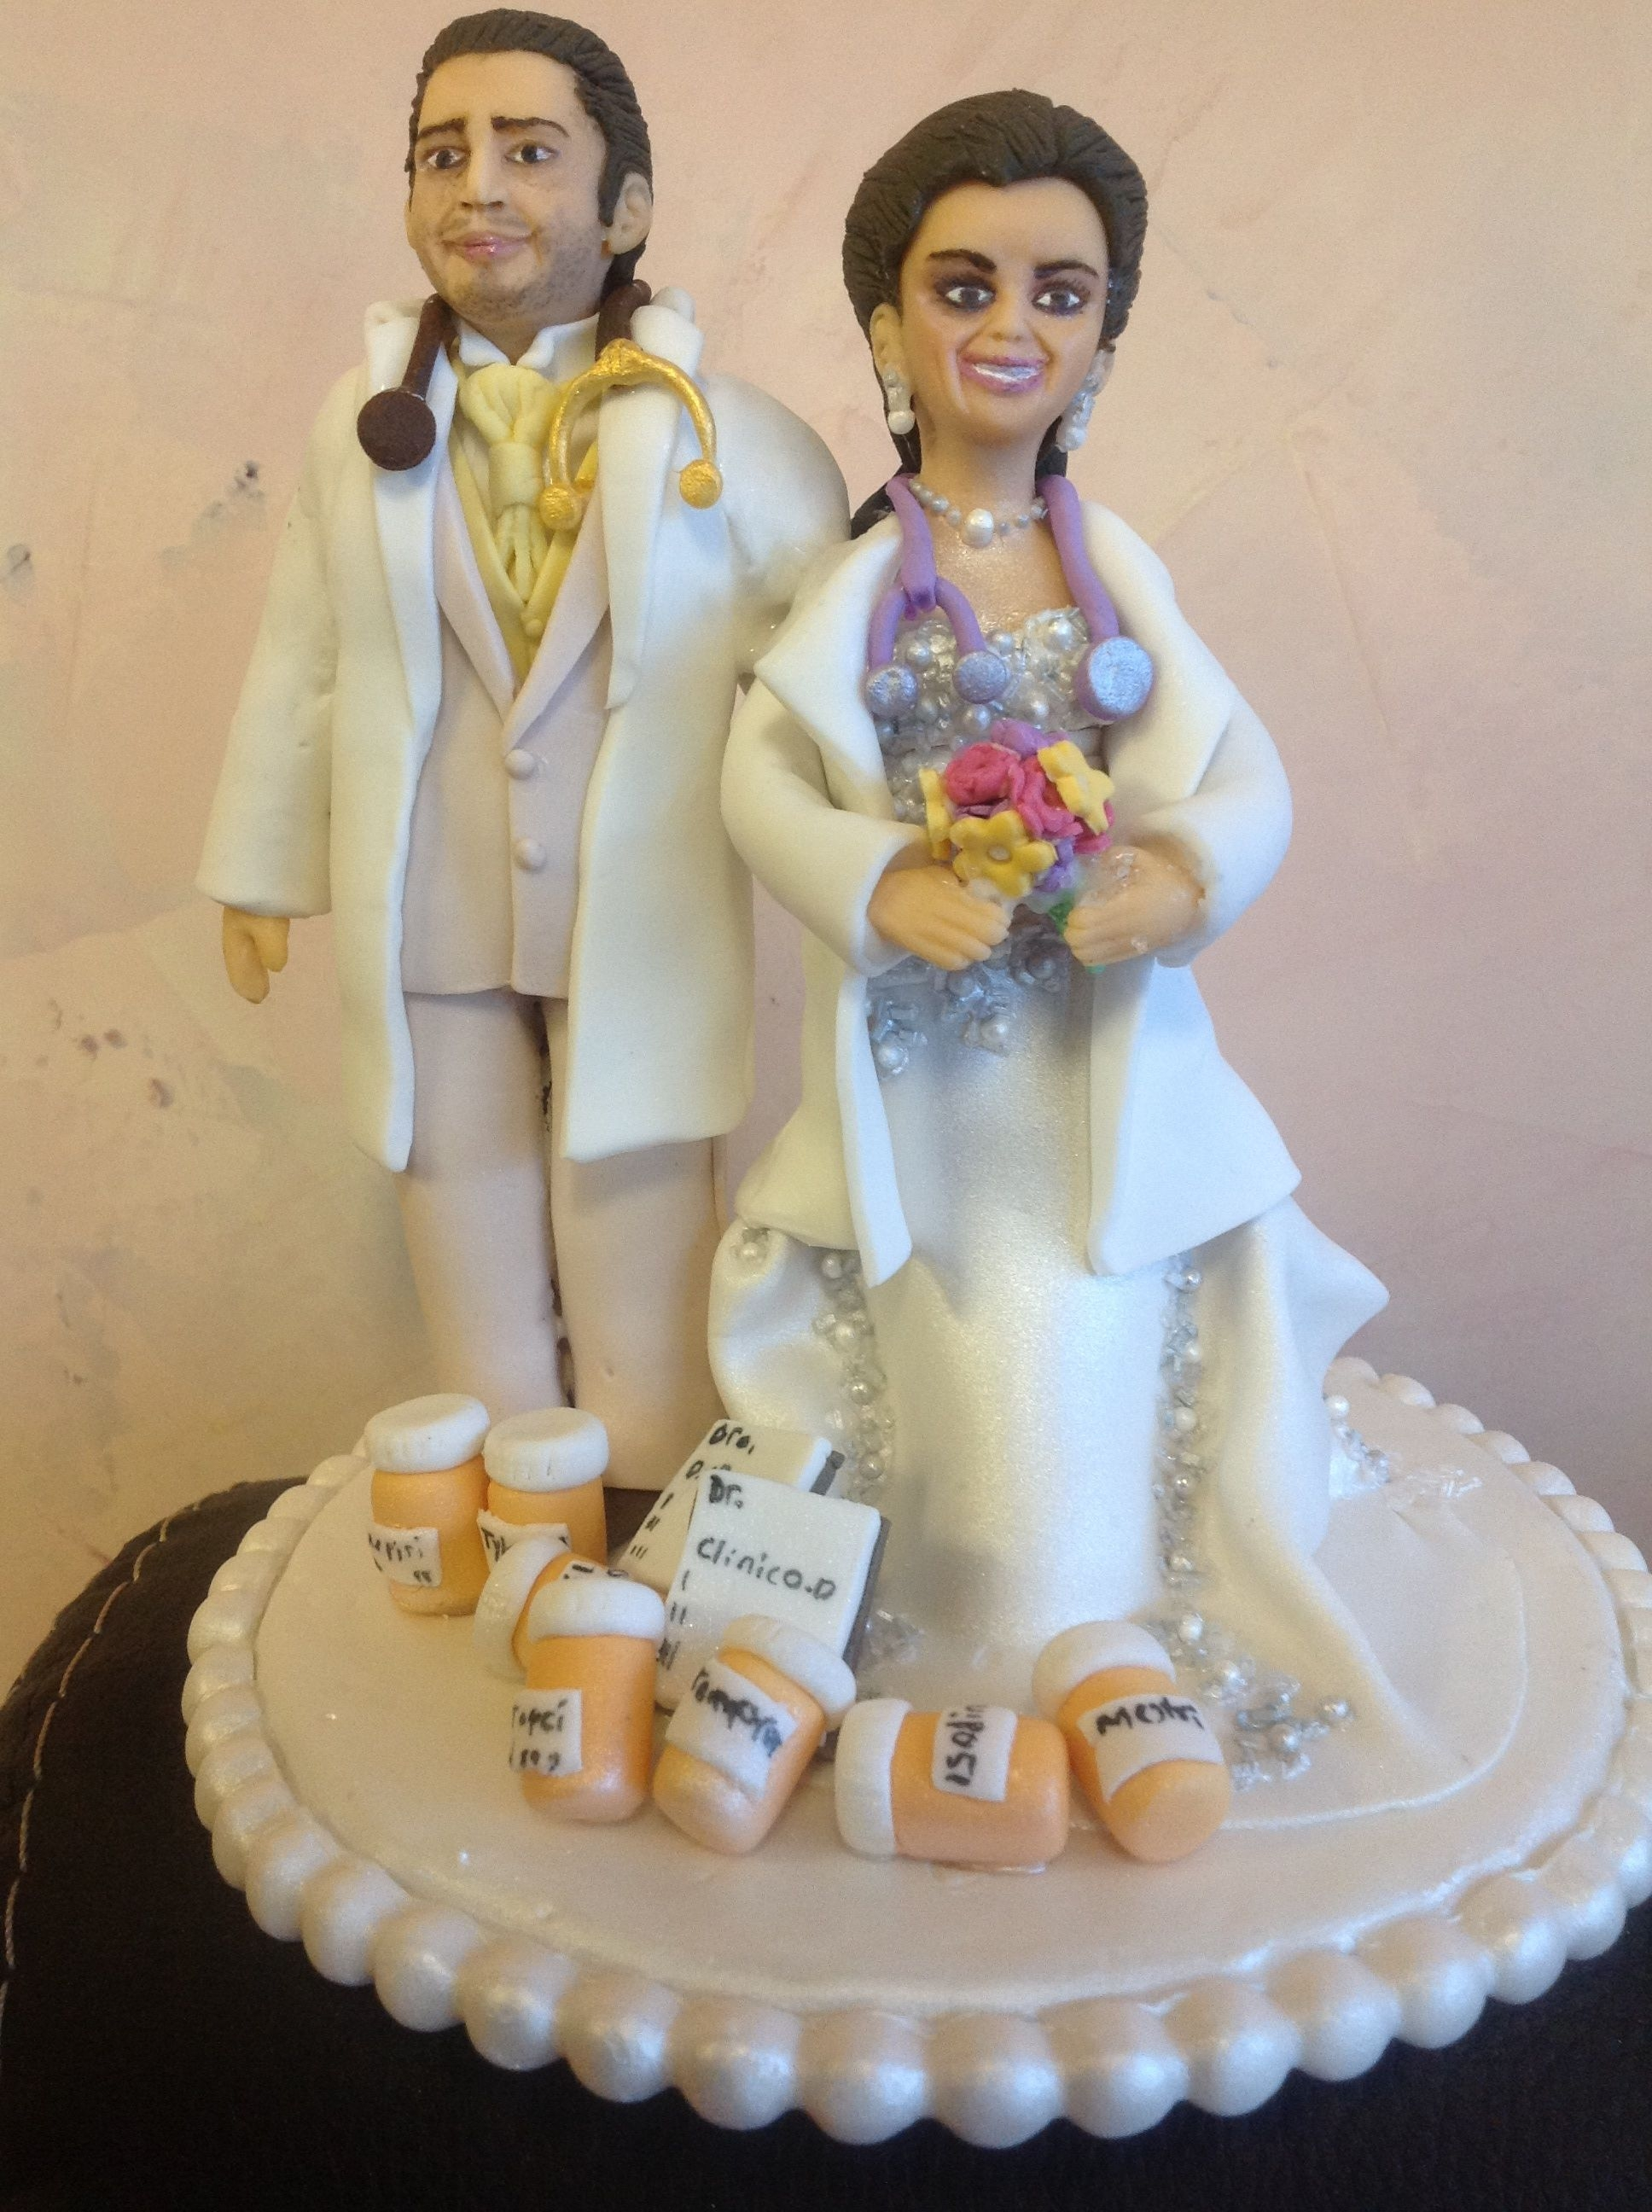 british wedding cake toppers wedding cake topper 100 edible figurines are made of 12172